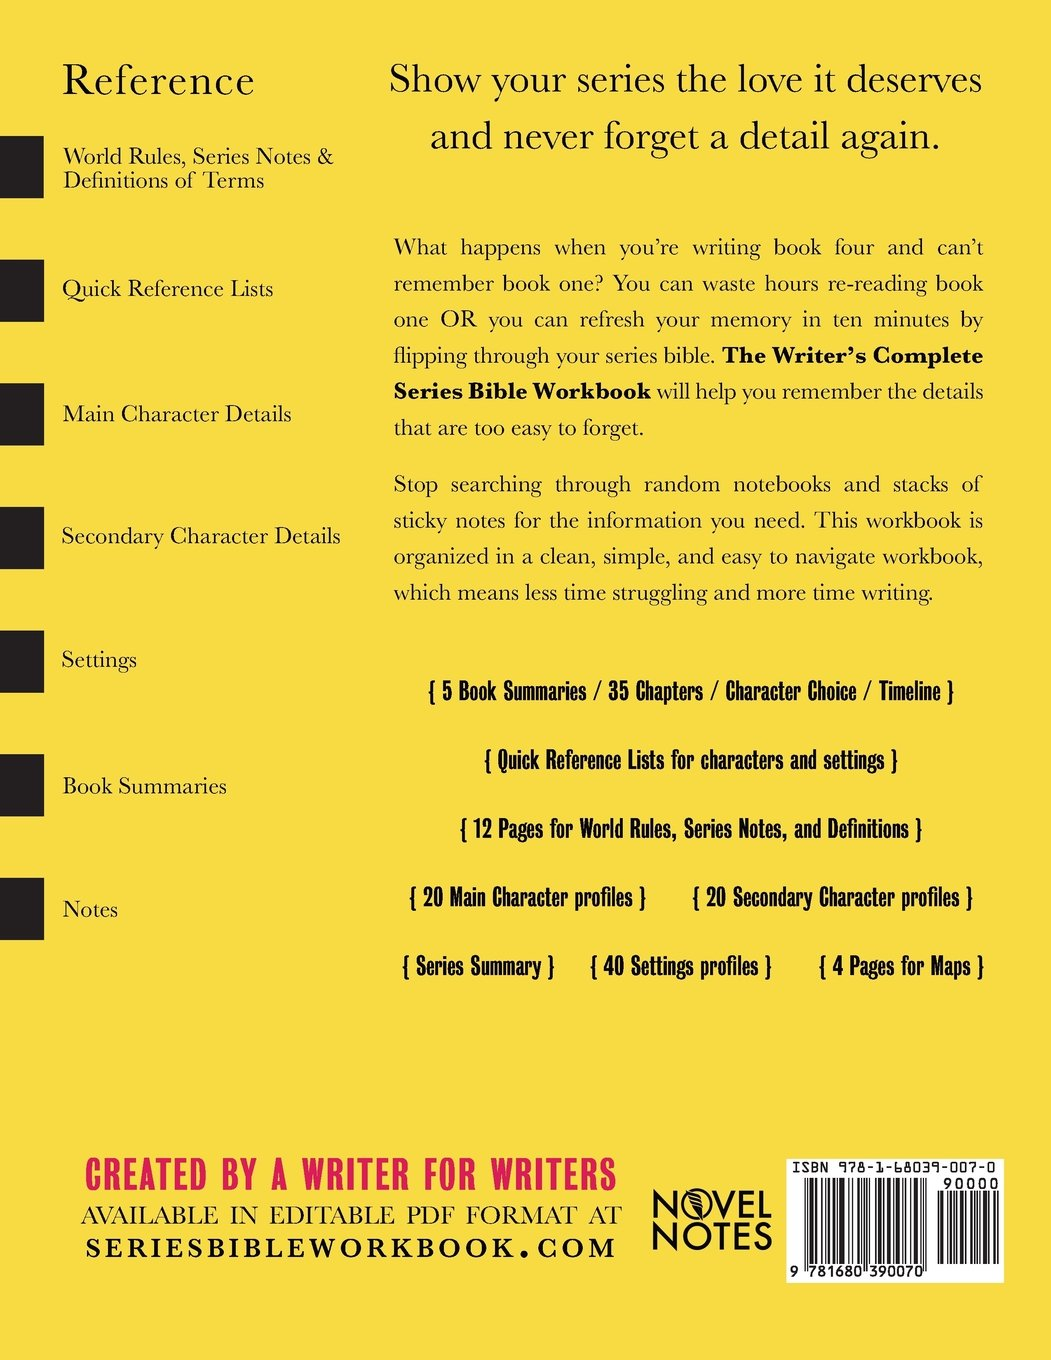 The Writer's Complete Series Bible Workbook: The one tool a series